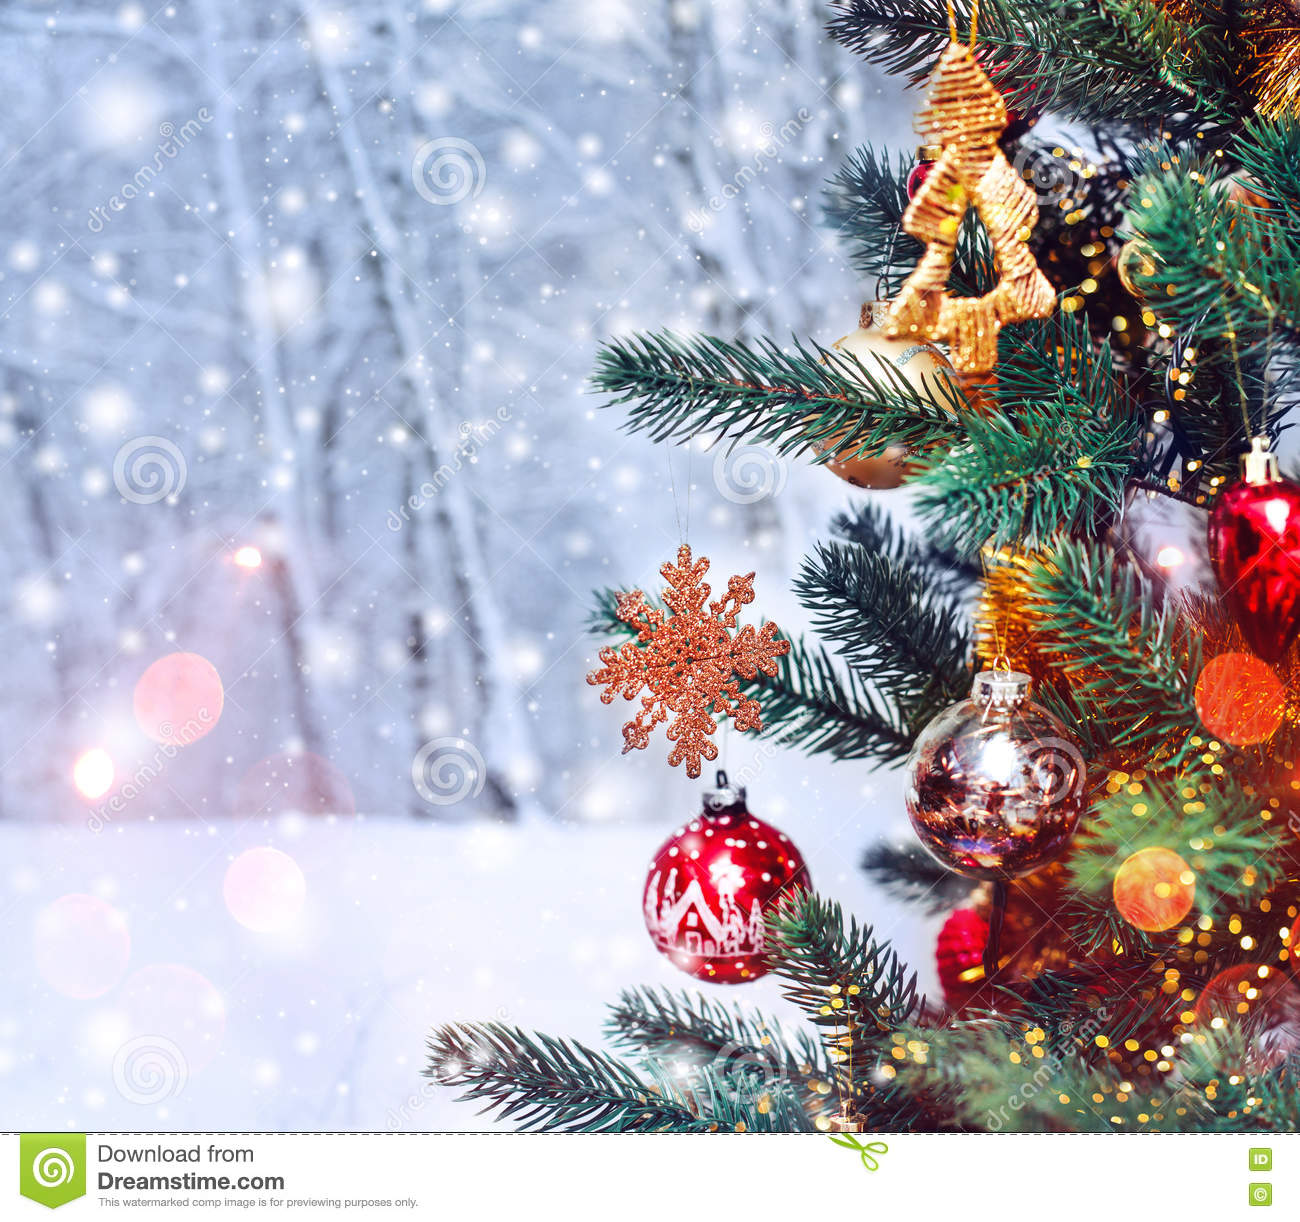 Christmas Decorations Background Pictures: Christmas Tree Background And Christmas Decorations With